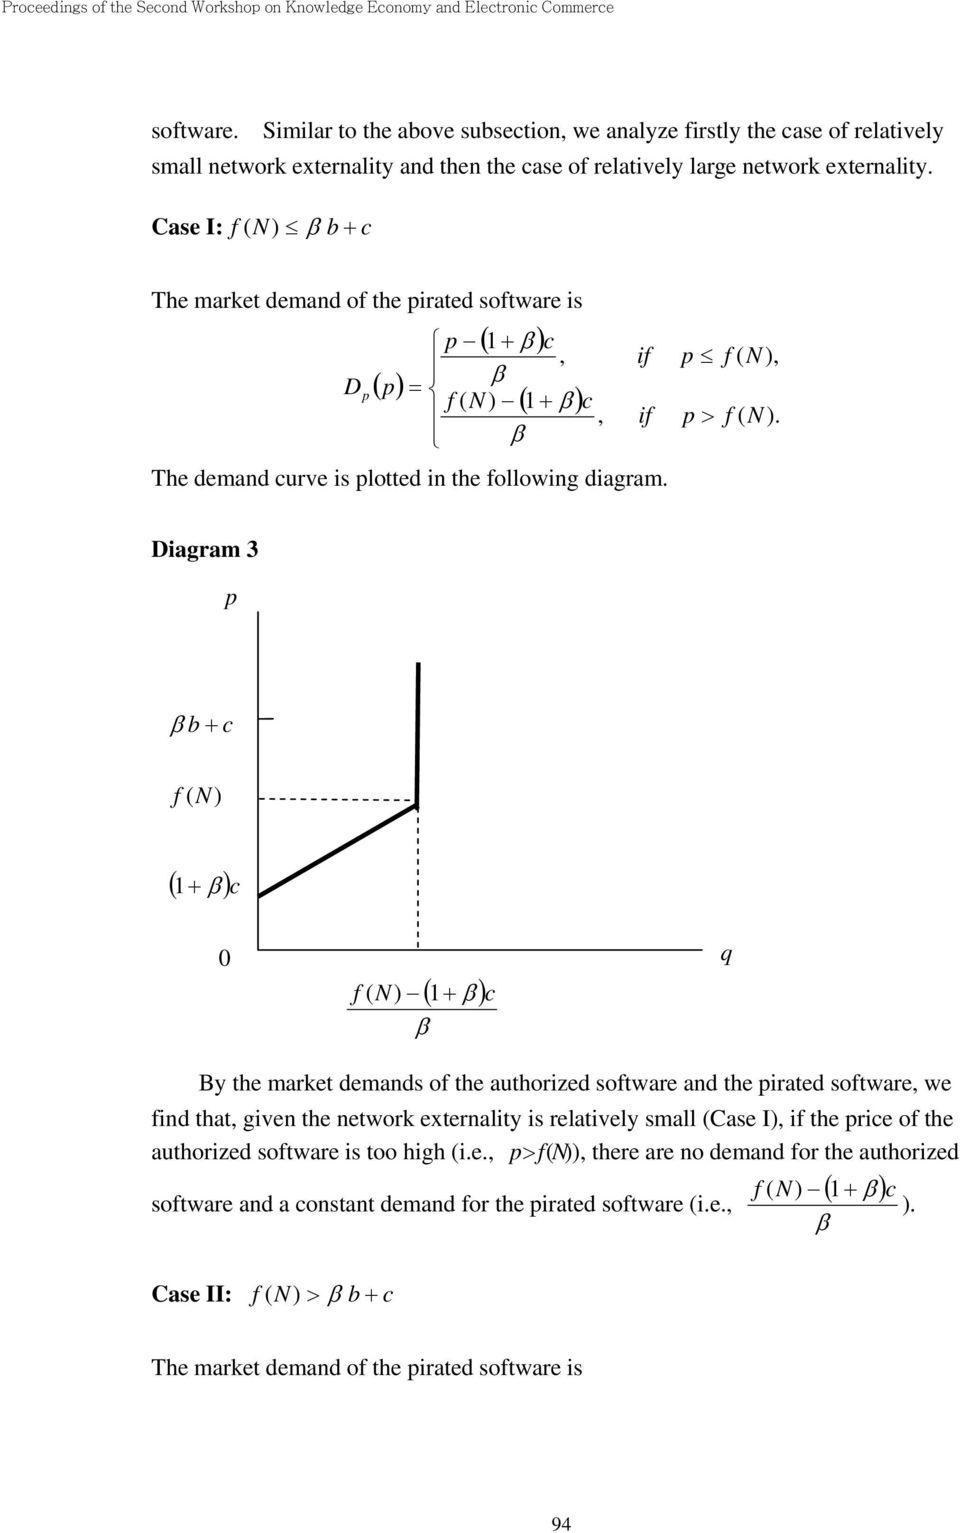 Diagram 3 β b + c f (N) ( 1 + β )c ( 1 ) β + β c q By the market demands of the authorized software and the irated software, we find that, given the network externality is relatively small (Case I),